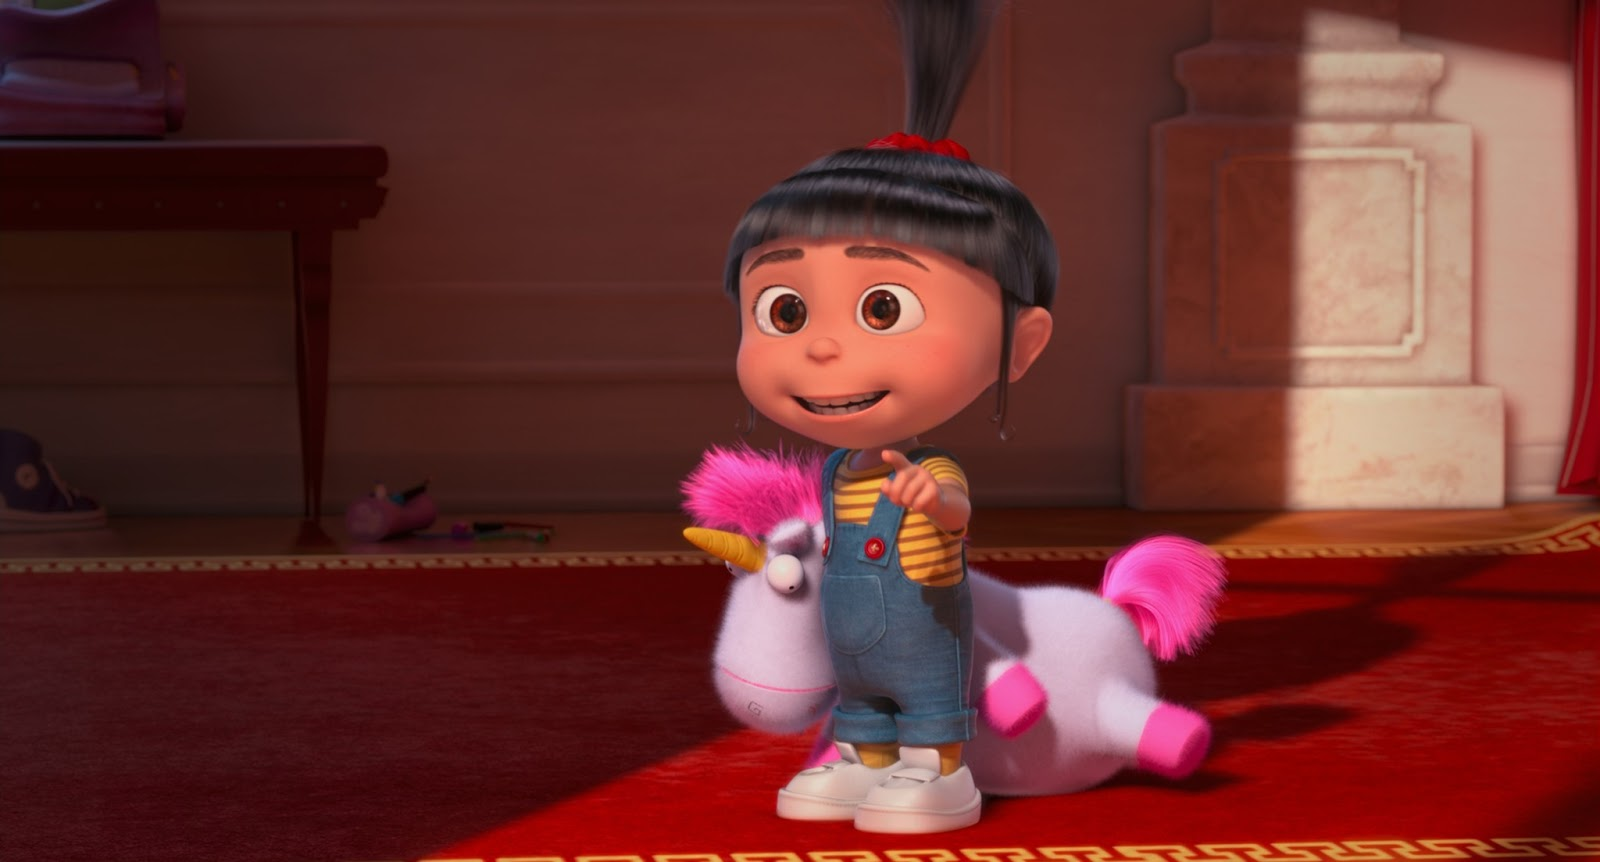 P@RTH's Plethora: Despicable Me 2: You Barely Expected ...